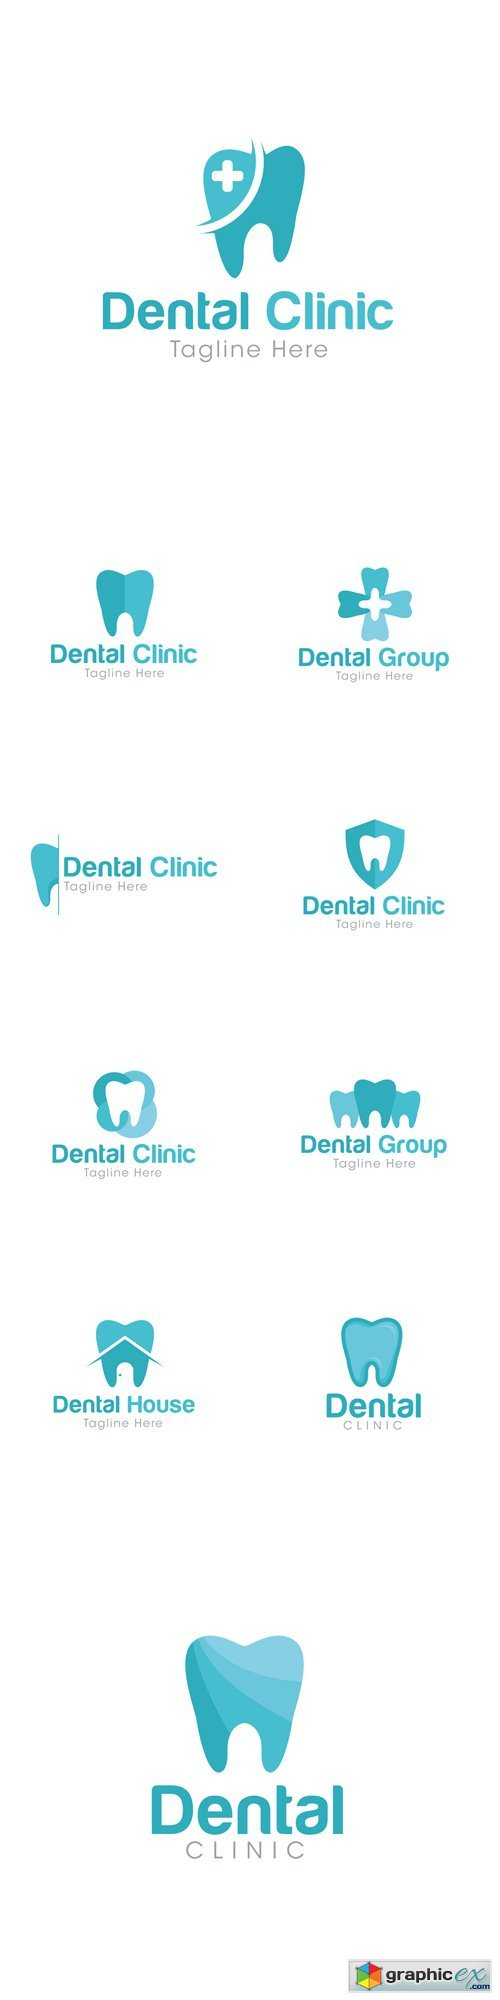 Dental Clinic Logo Creative Design